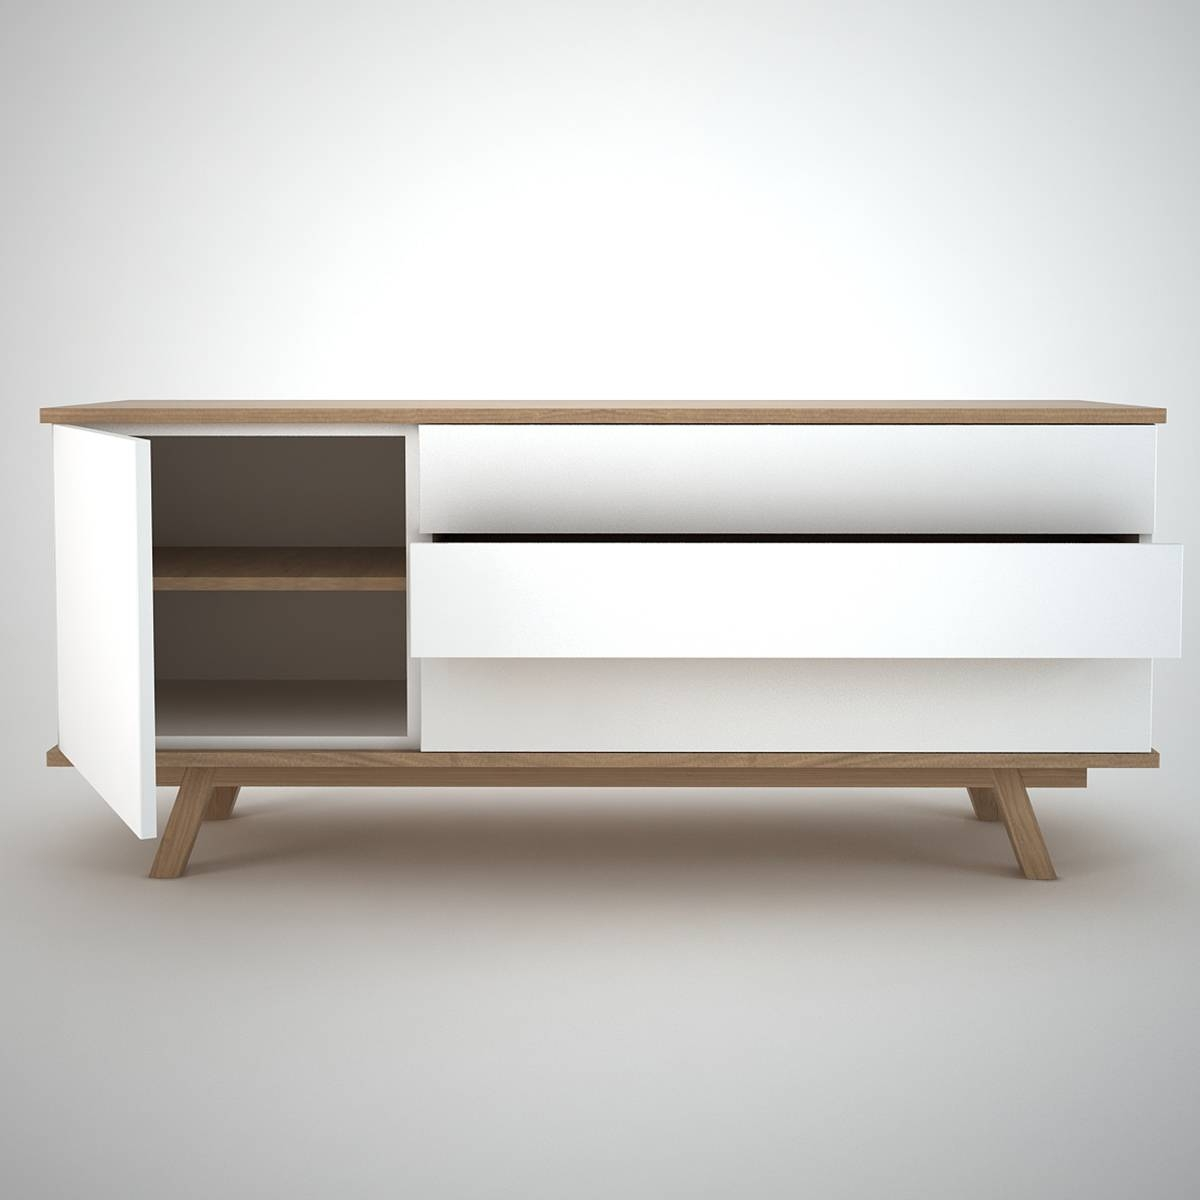 Furniture: Beautiful Profile Modern Sideboard For Living Room for White Contemporary Sideboards (Image 8 of 30)